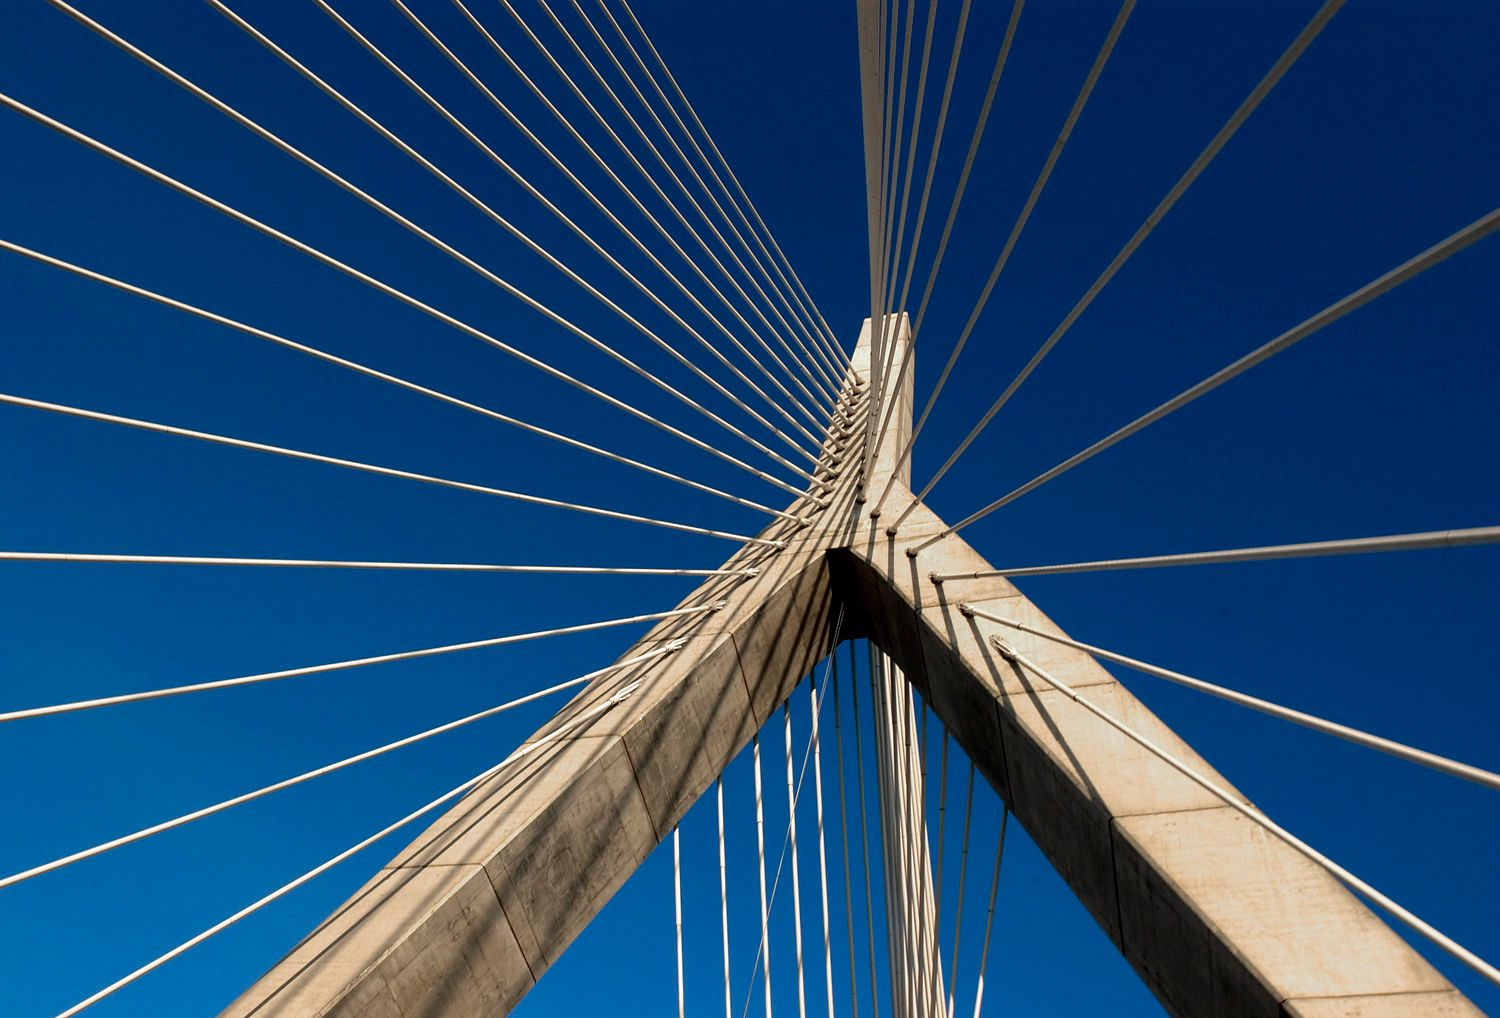 Architectural Detail of the Zakim Bridge